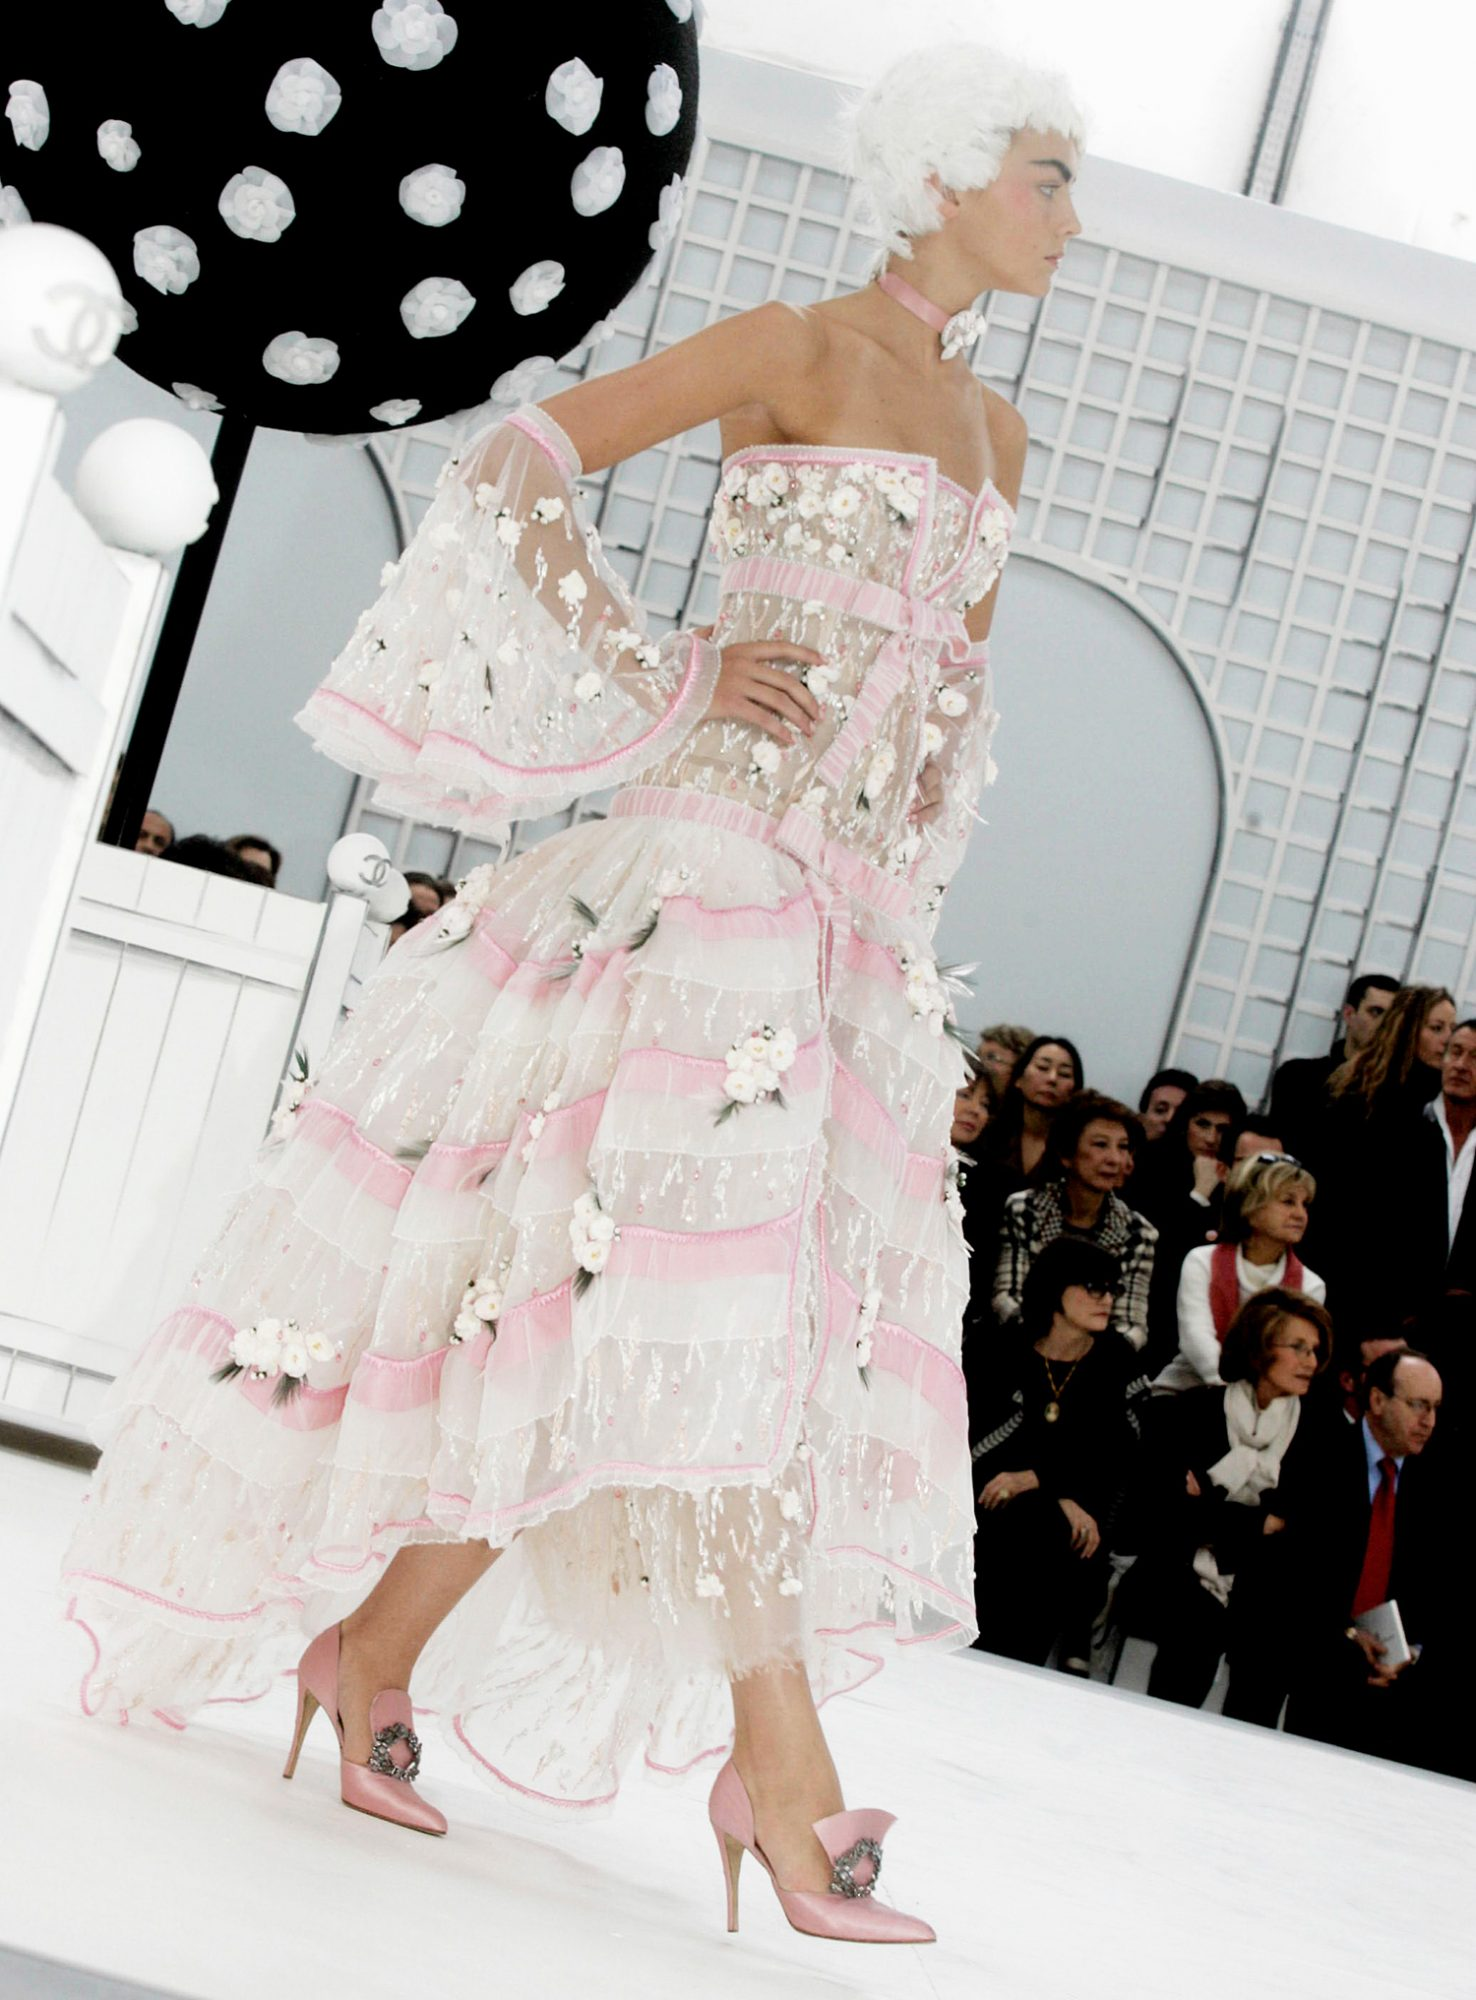 A model walks down the runway during the Chanel fashion show, part of Paris Fashion Week (Haute Couture) Spring/Summer 2005 on January 25, 2005 in Paris, France